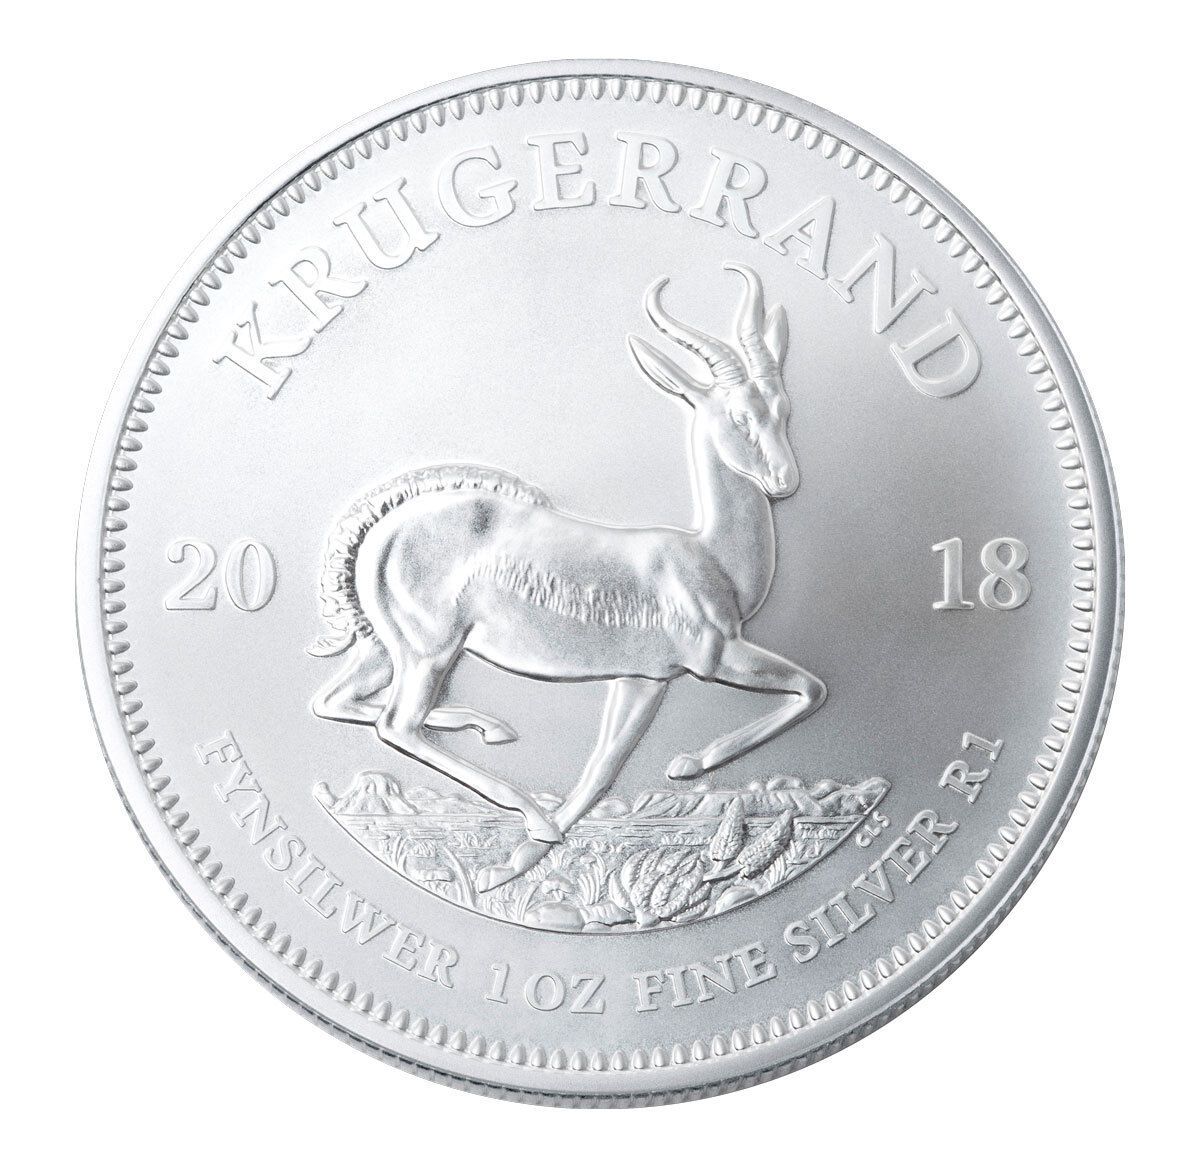 Купить 2018 South Africa 1 oz Silver Krugerrand R1 Coin GEM BU SKU54609